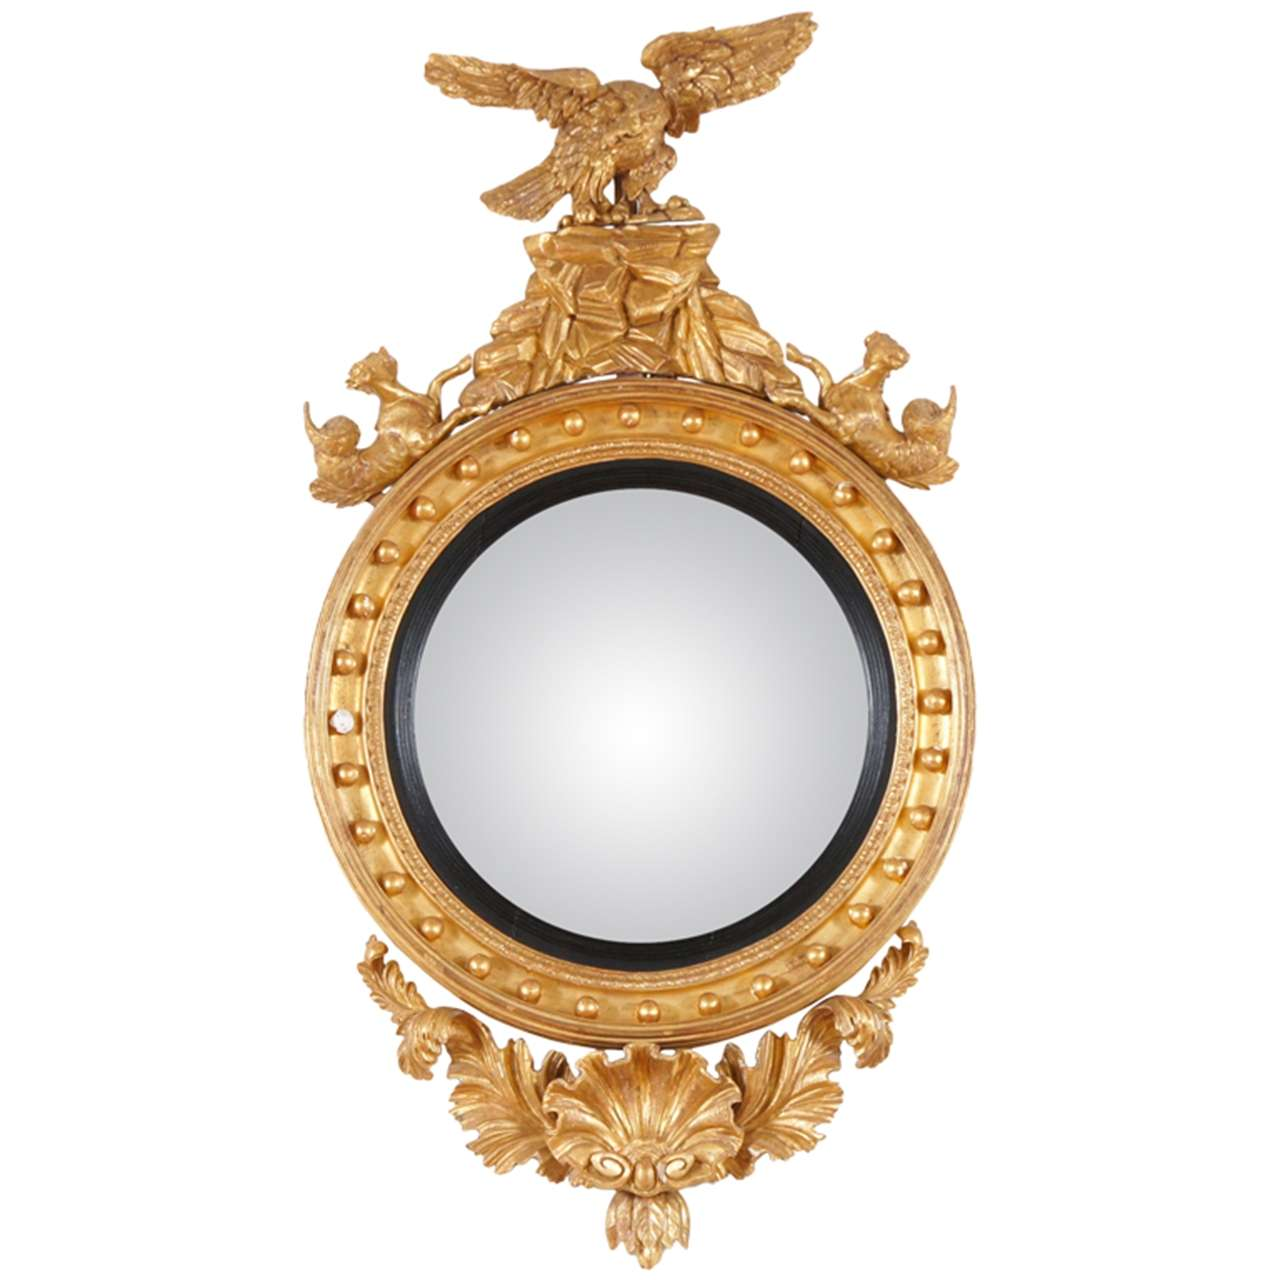 English giltwood convex mirror at 1stdibs for Convex mirror